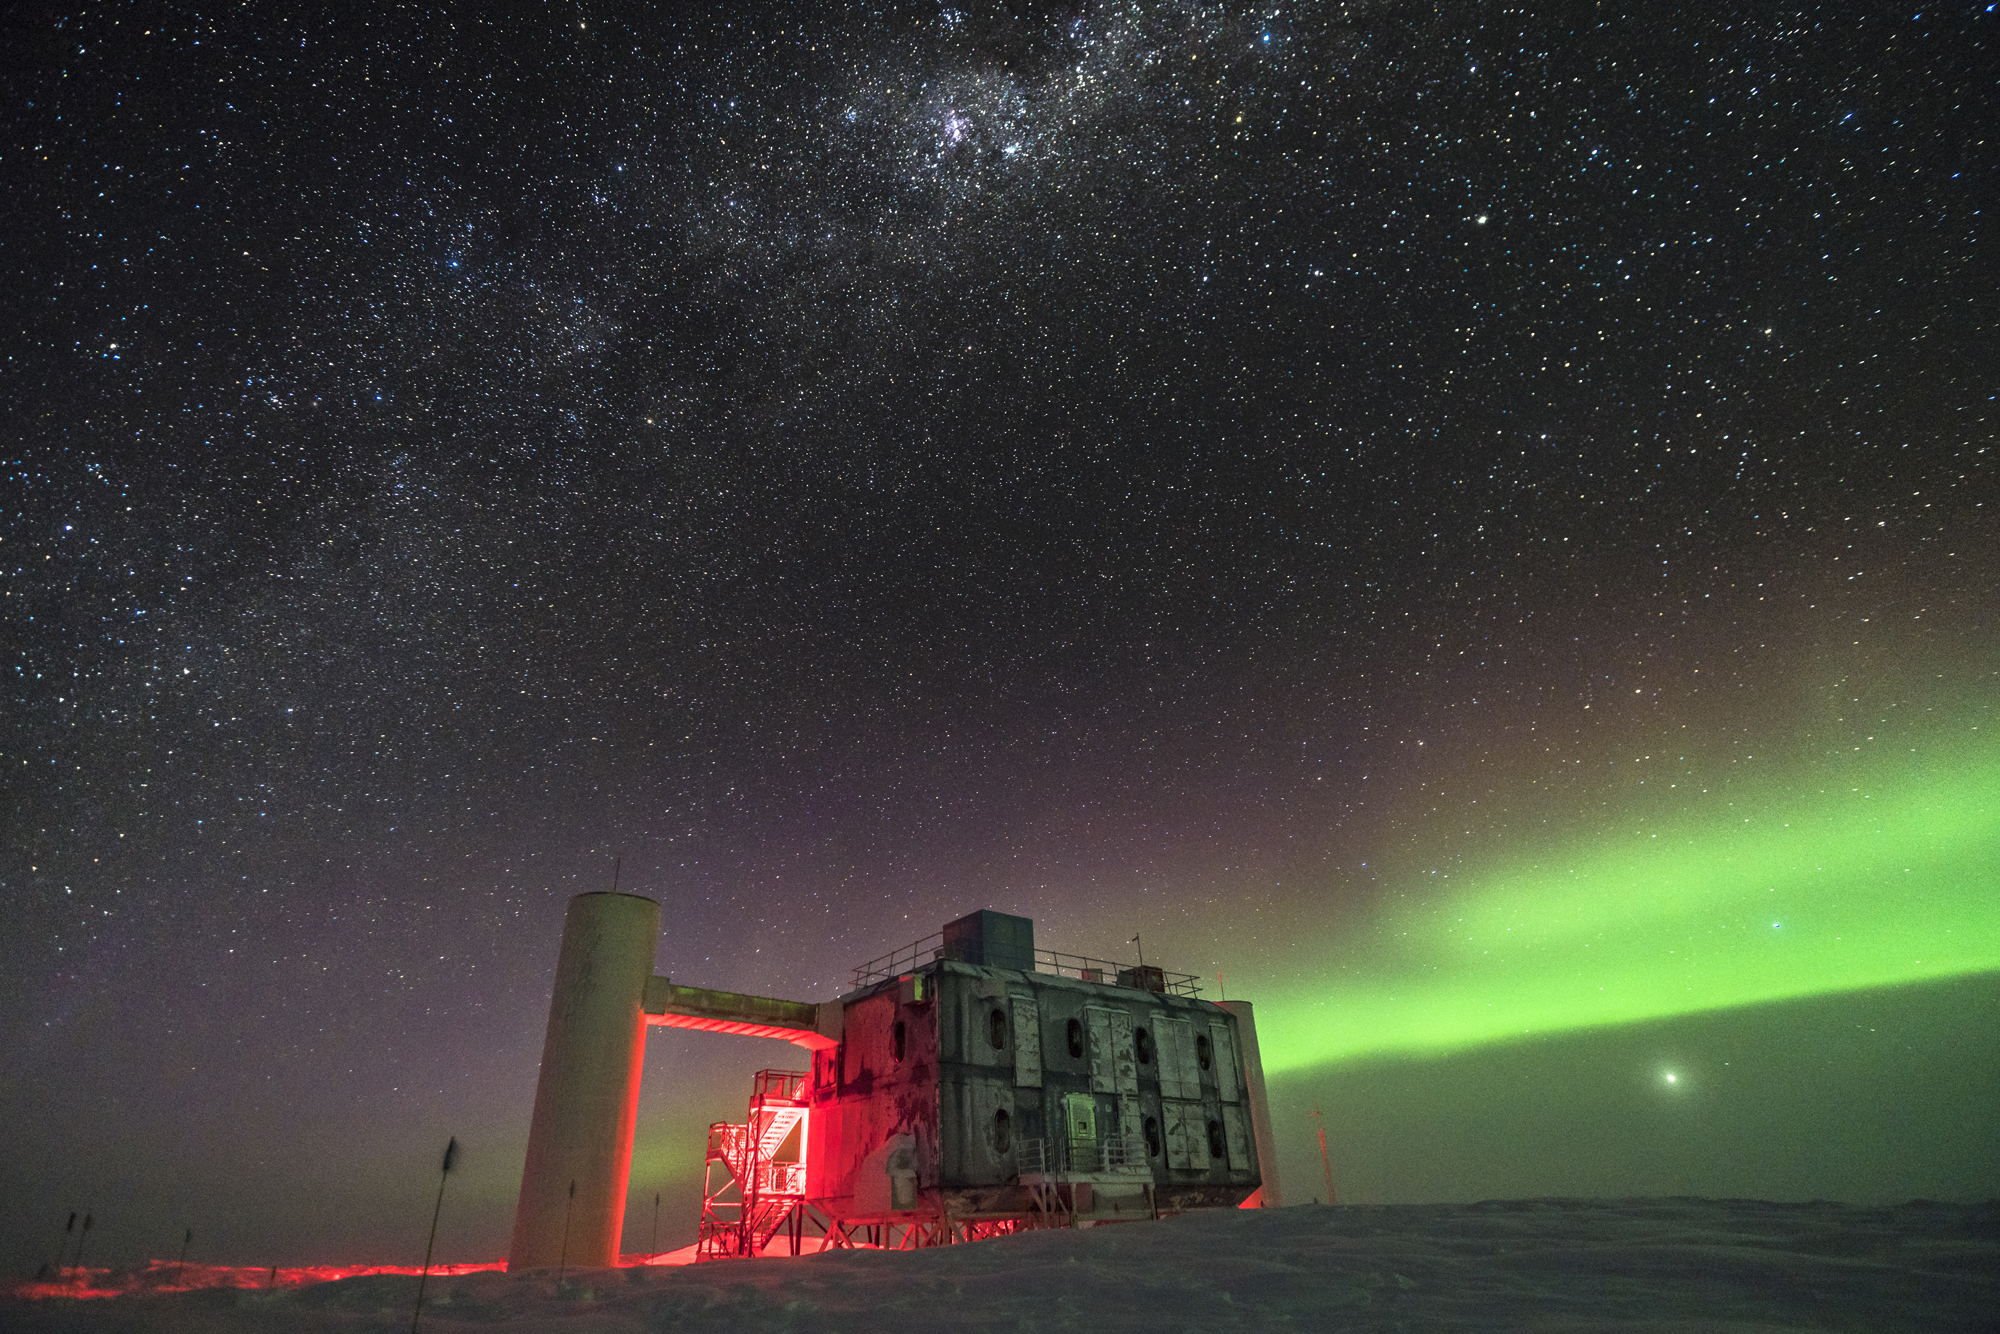 Scientists Tracked a Neutrino From a Far-Off Galaxy for the First Time